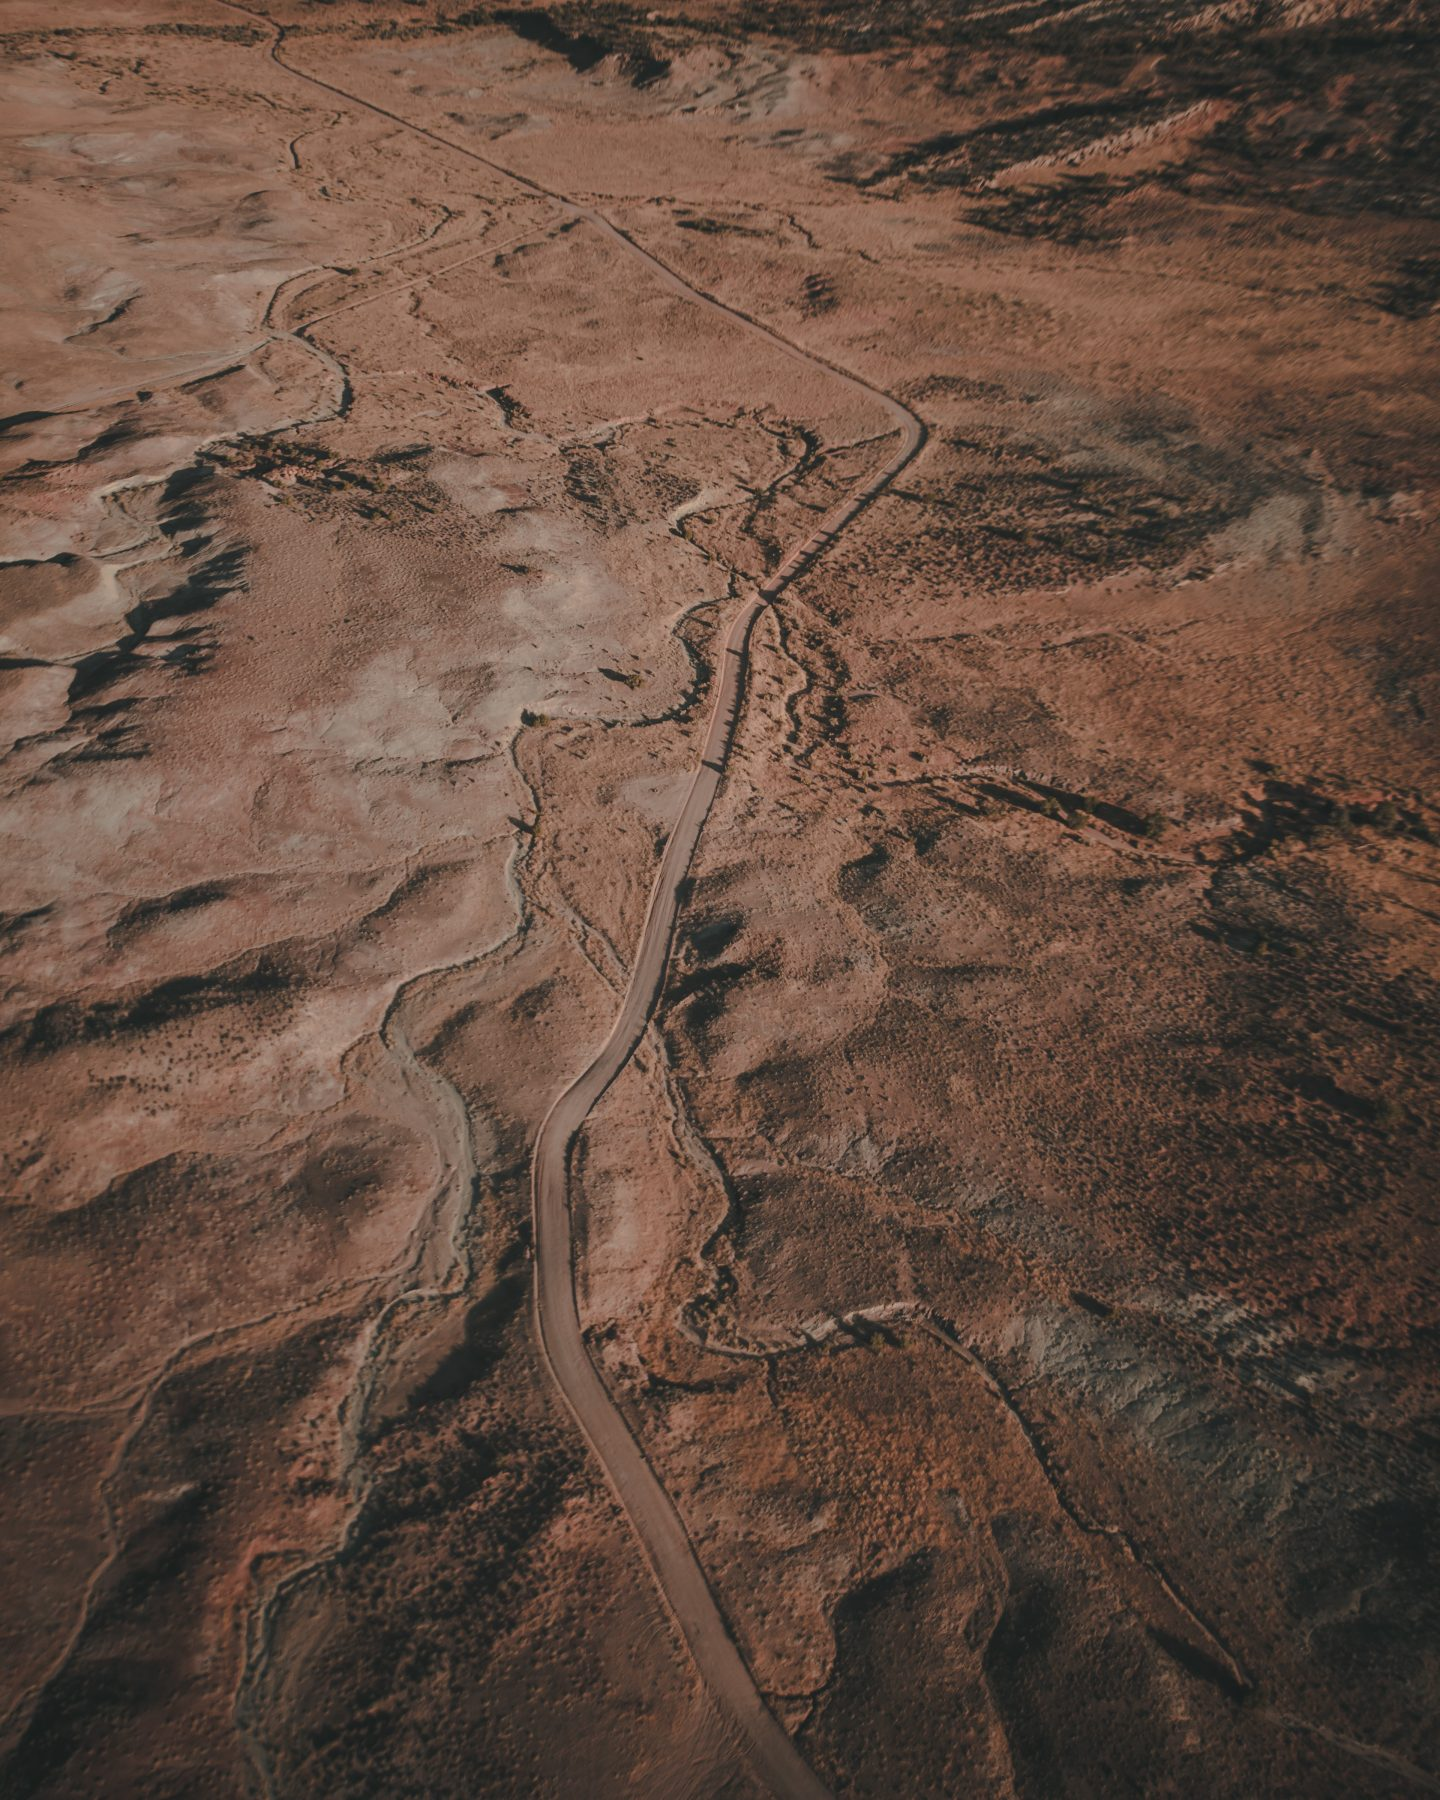 Landscape around Moab Utah from a sunrise hot air balloon ride